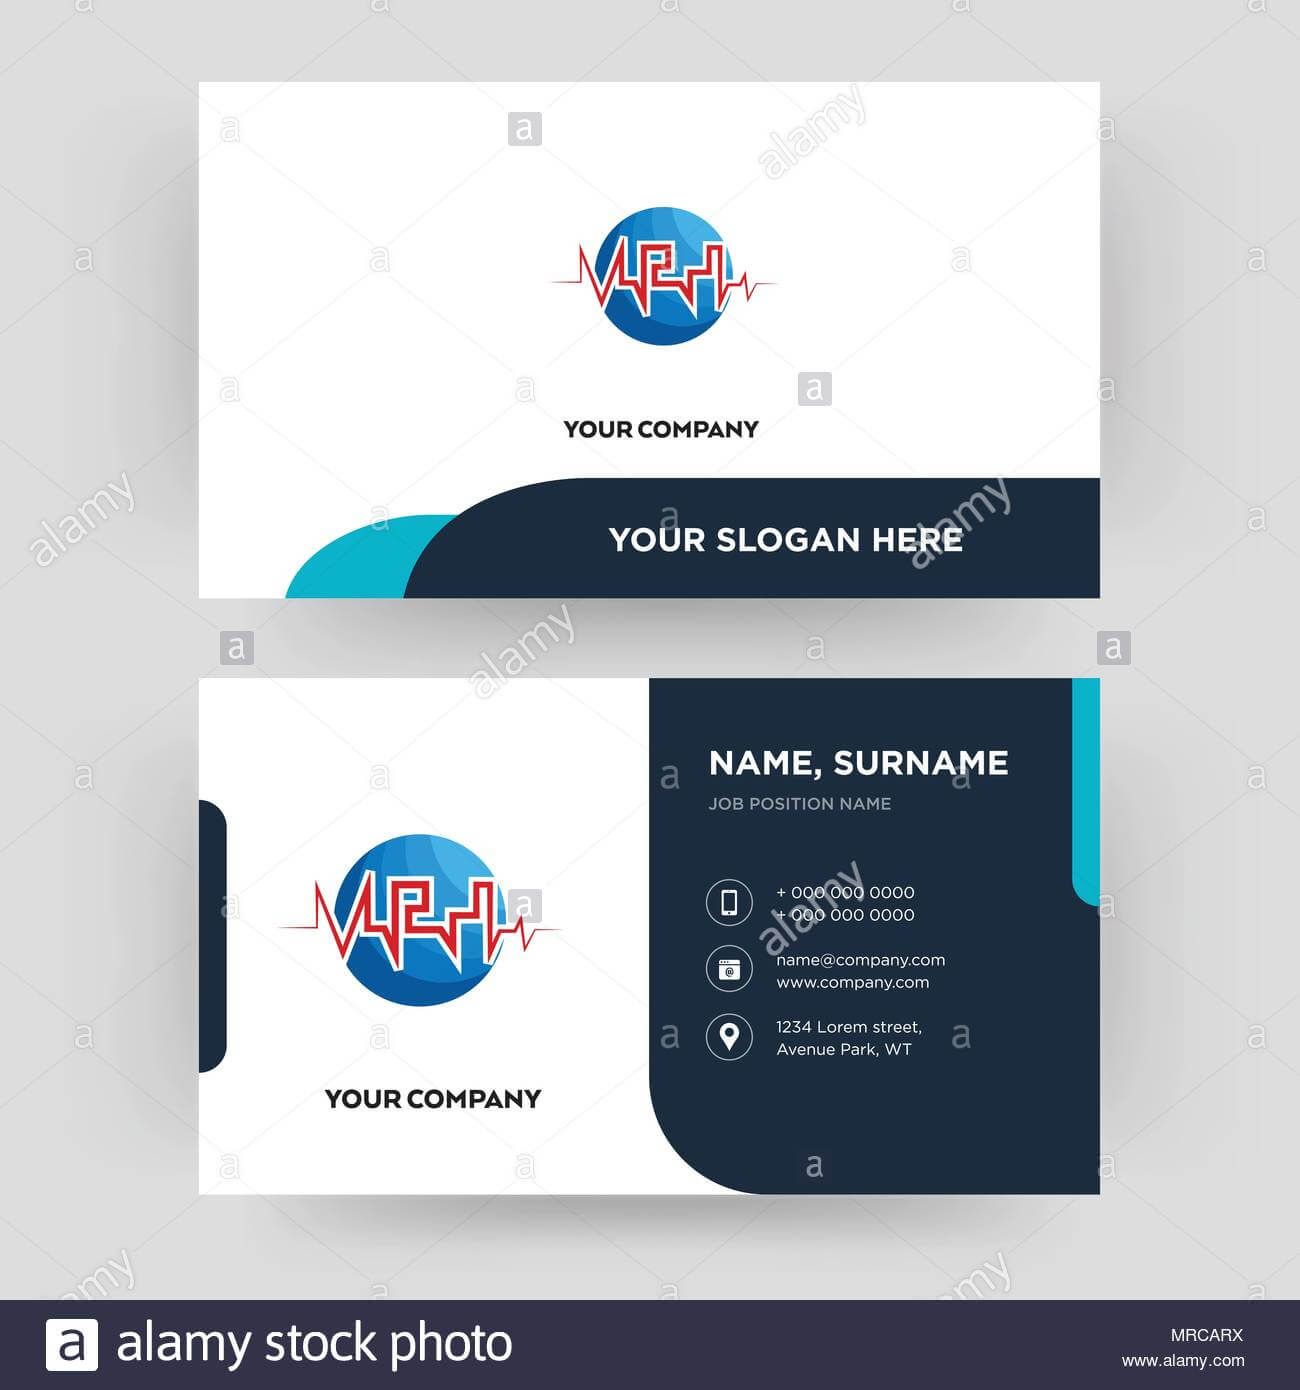 Med, Business Card Design Template, Visiting For Your within Med Card Template